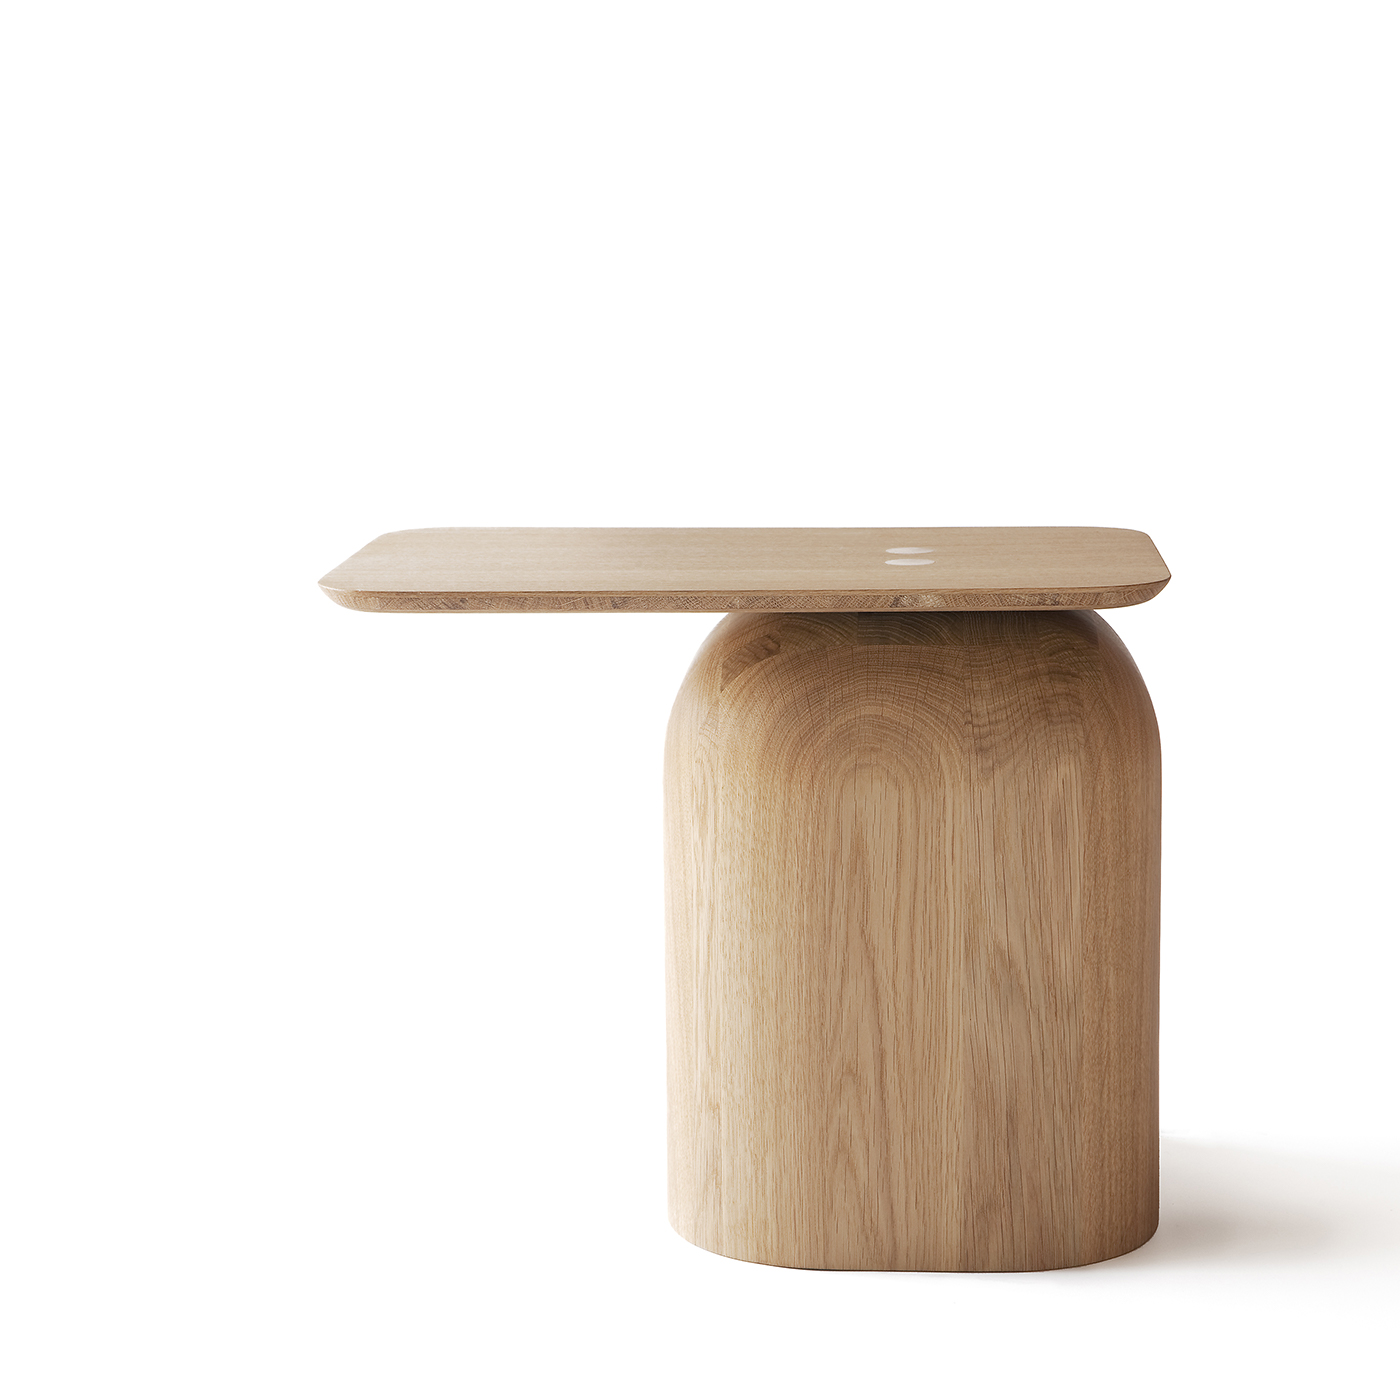 April oak side table by Nikari